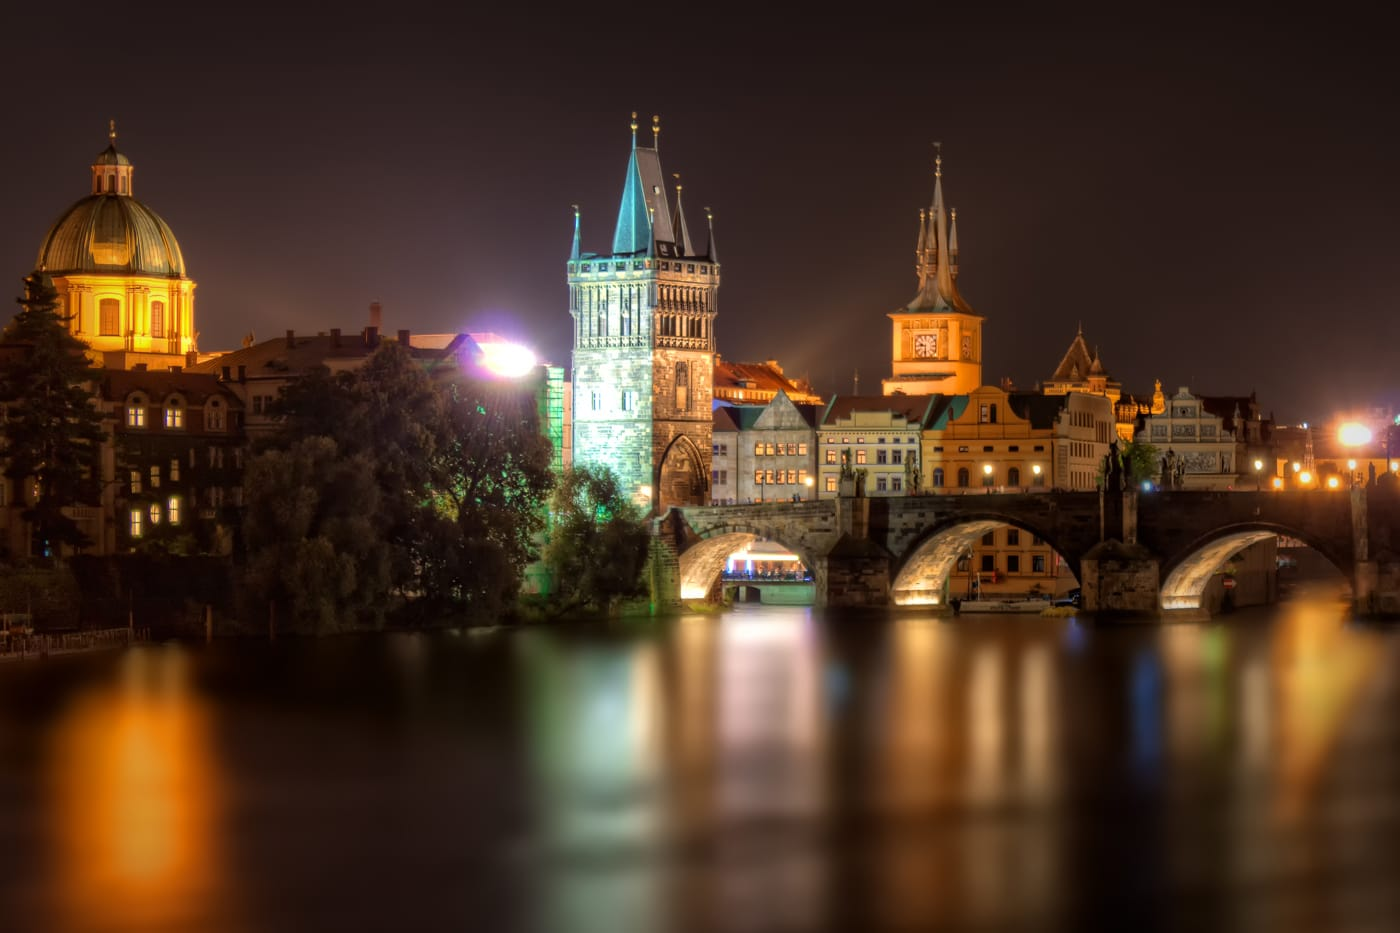 Charles Bridge Tower in Prague (Karlův most in Praha)